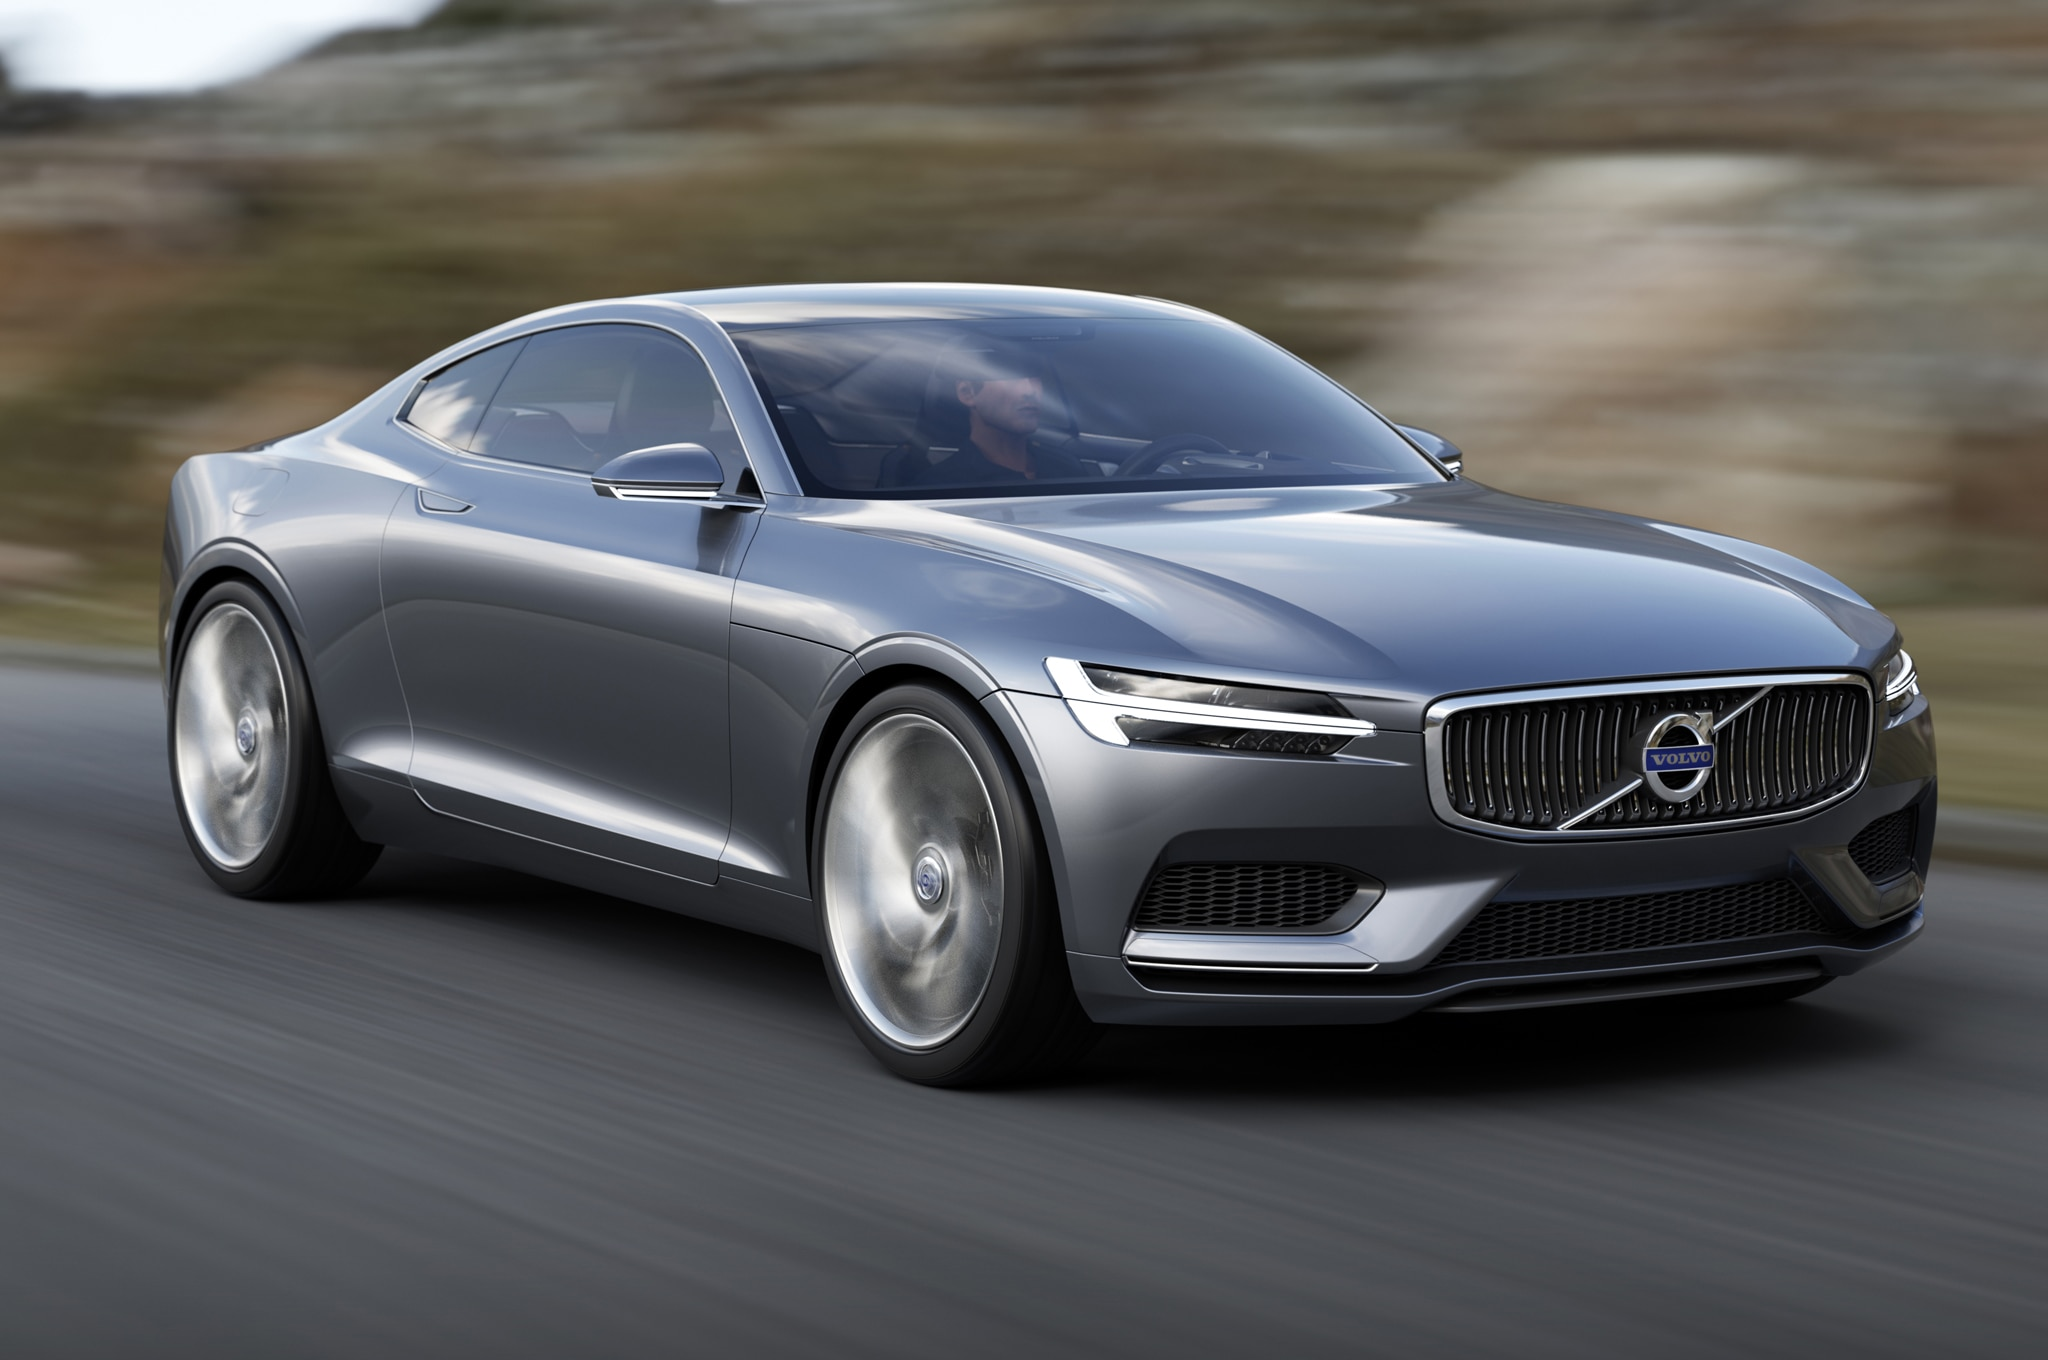 Volvo Concept Coupe Front Three Quarter In In Motion 052